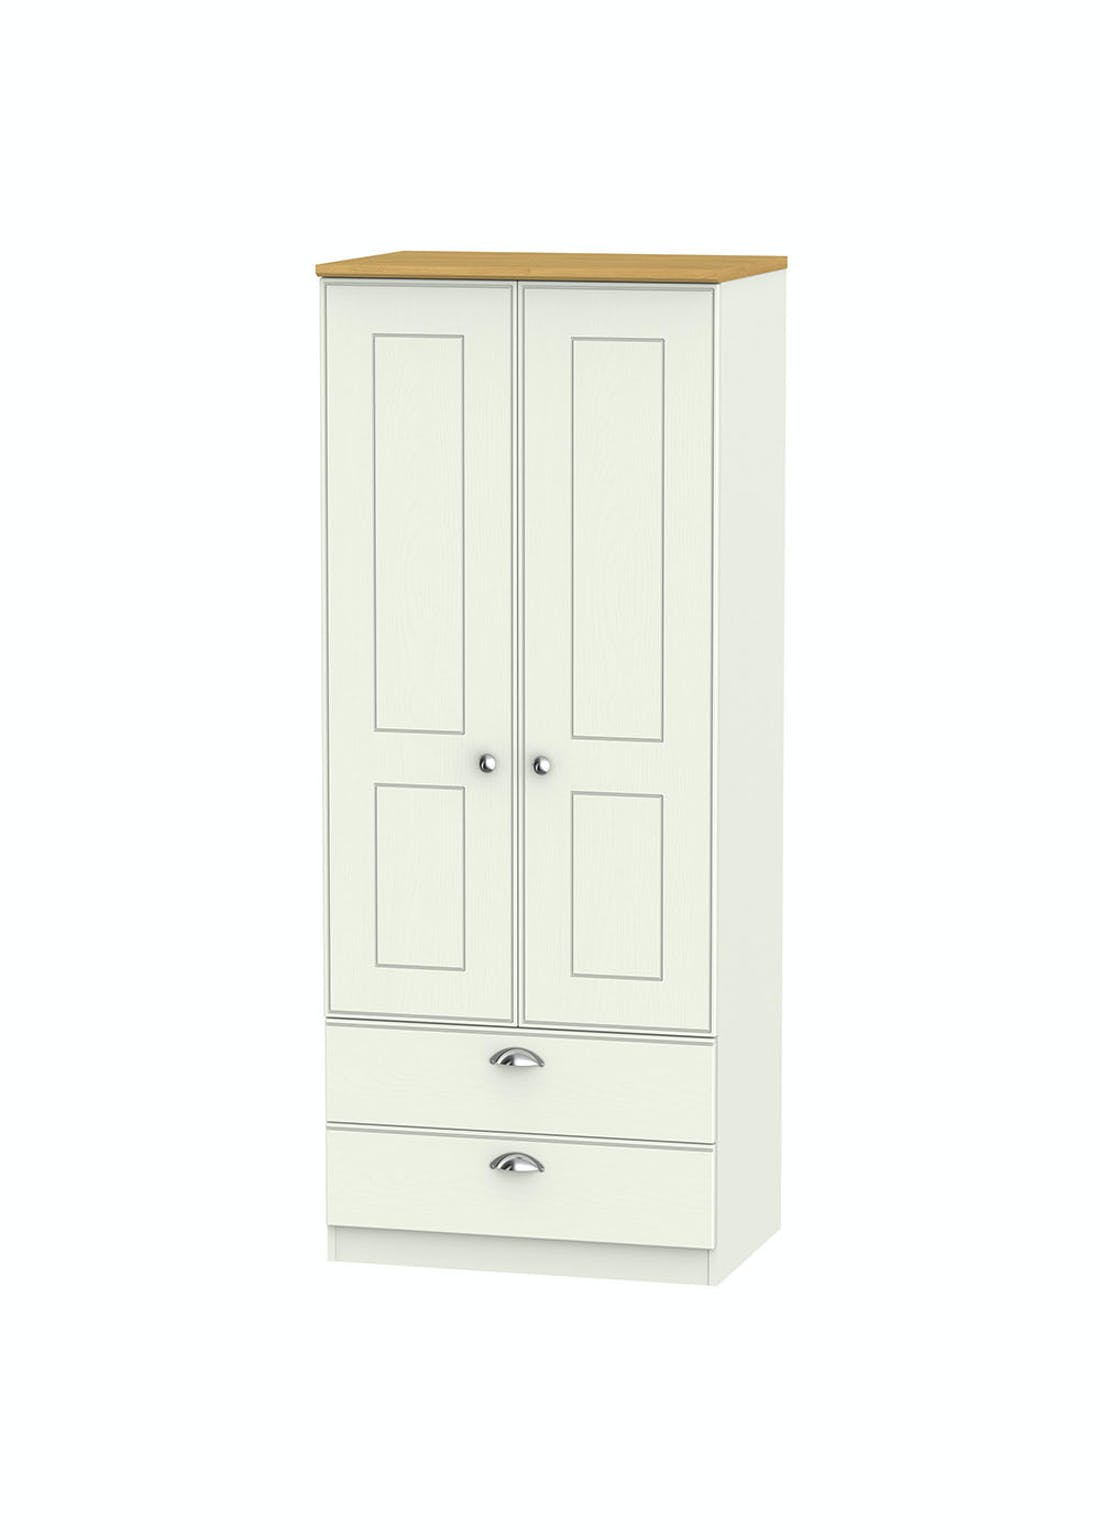 Swift Stamford 2 Door 2 Drawer Wardrobe (182.5cm x 74cm x 53cm)